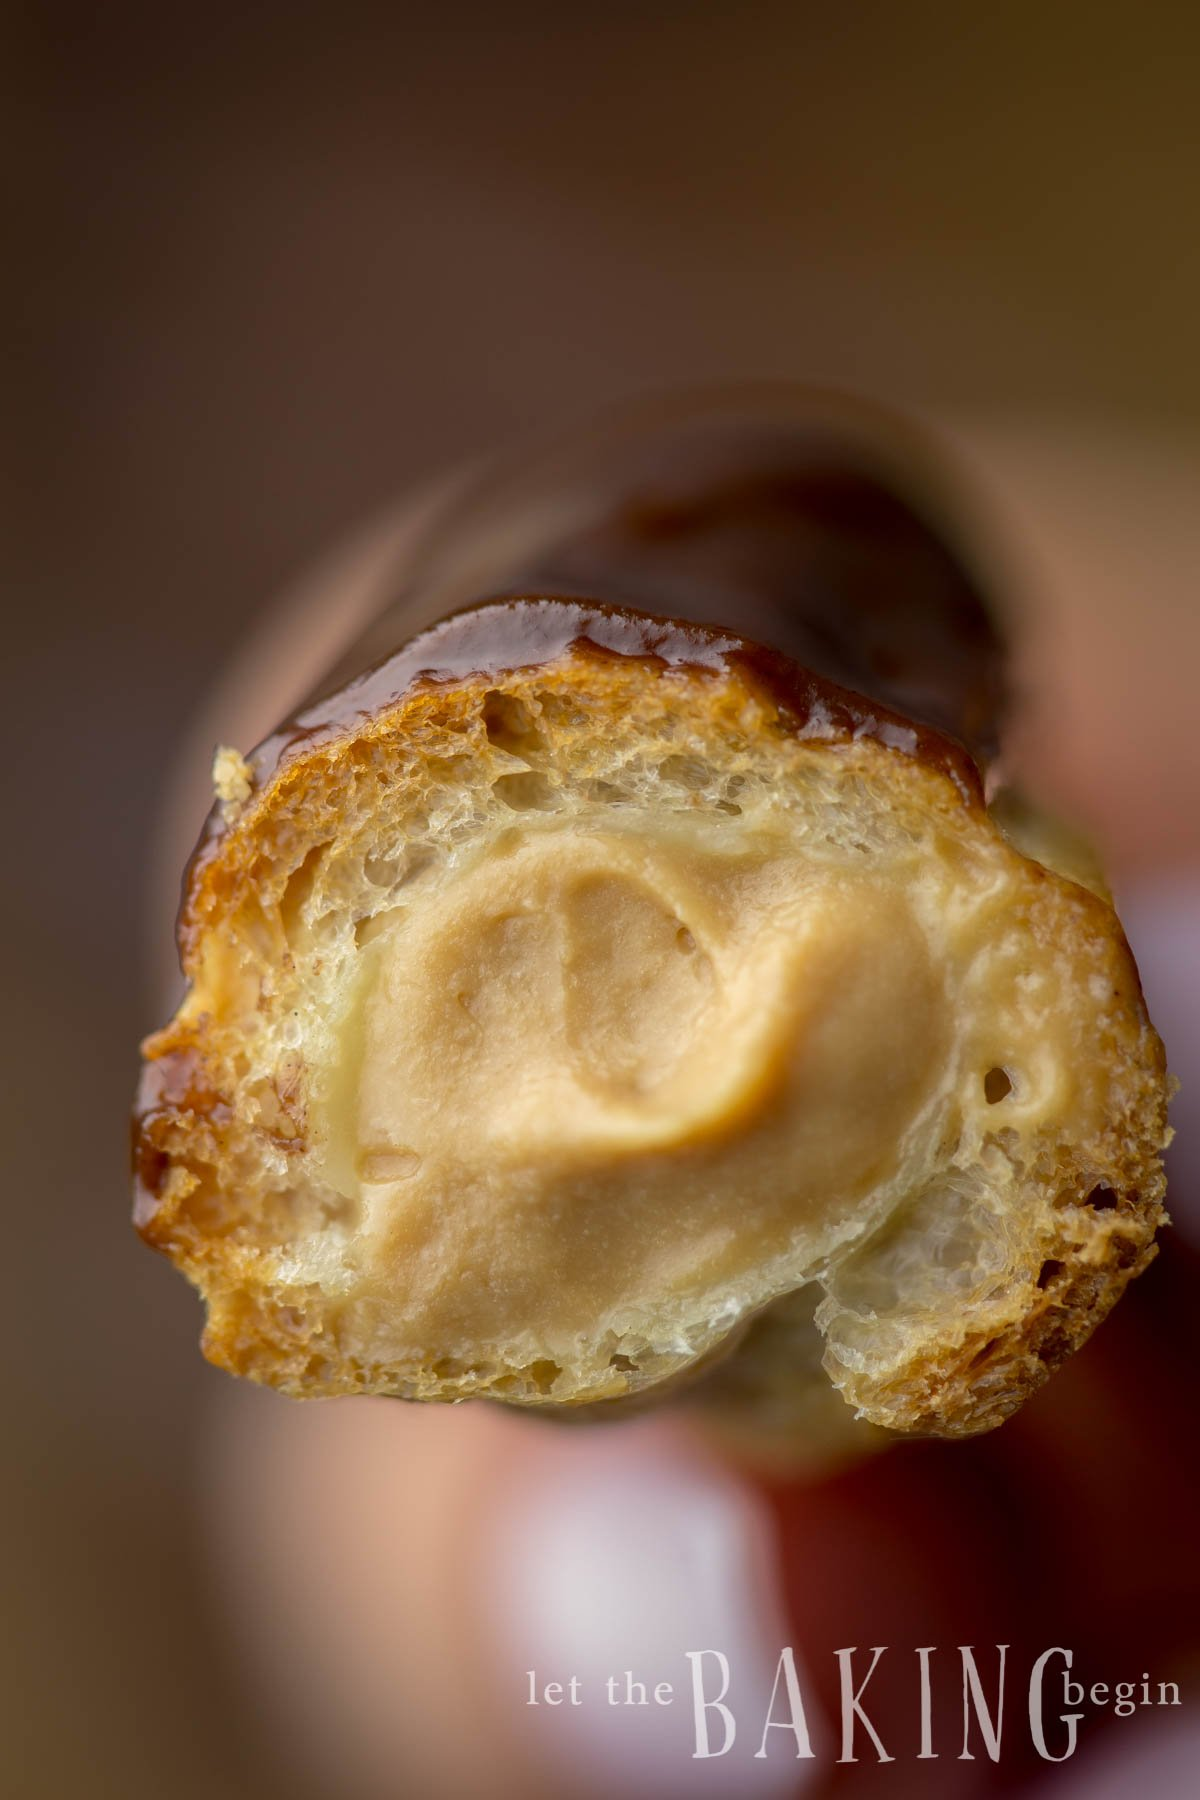 Classic Eclair is a hollow pastry shell filled with creamy custard. Great dessert.